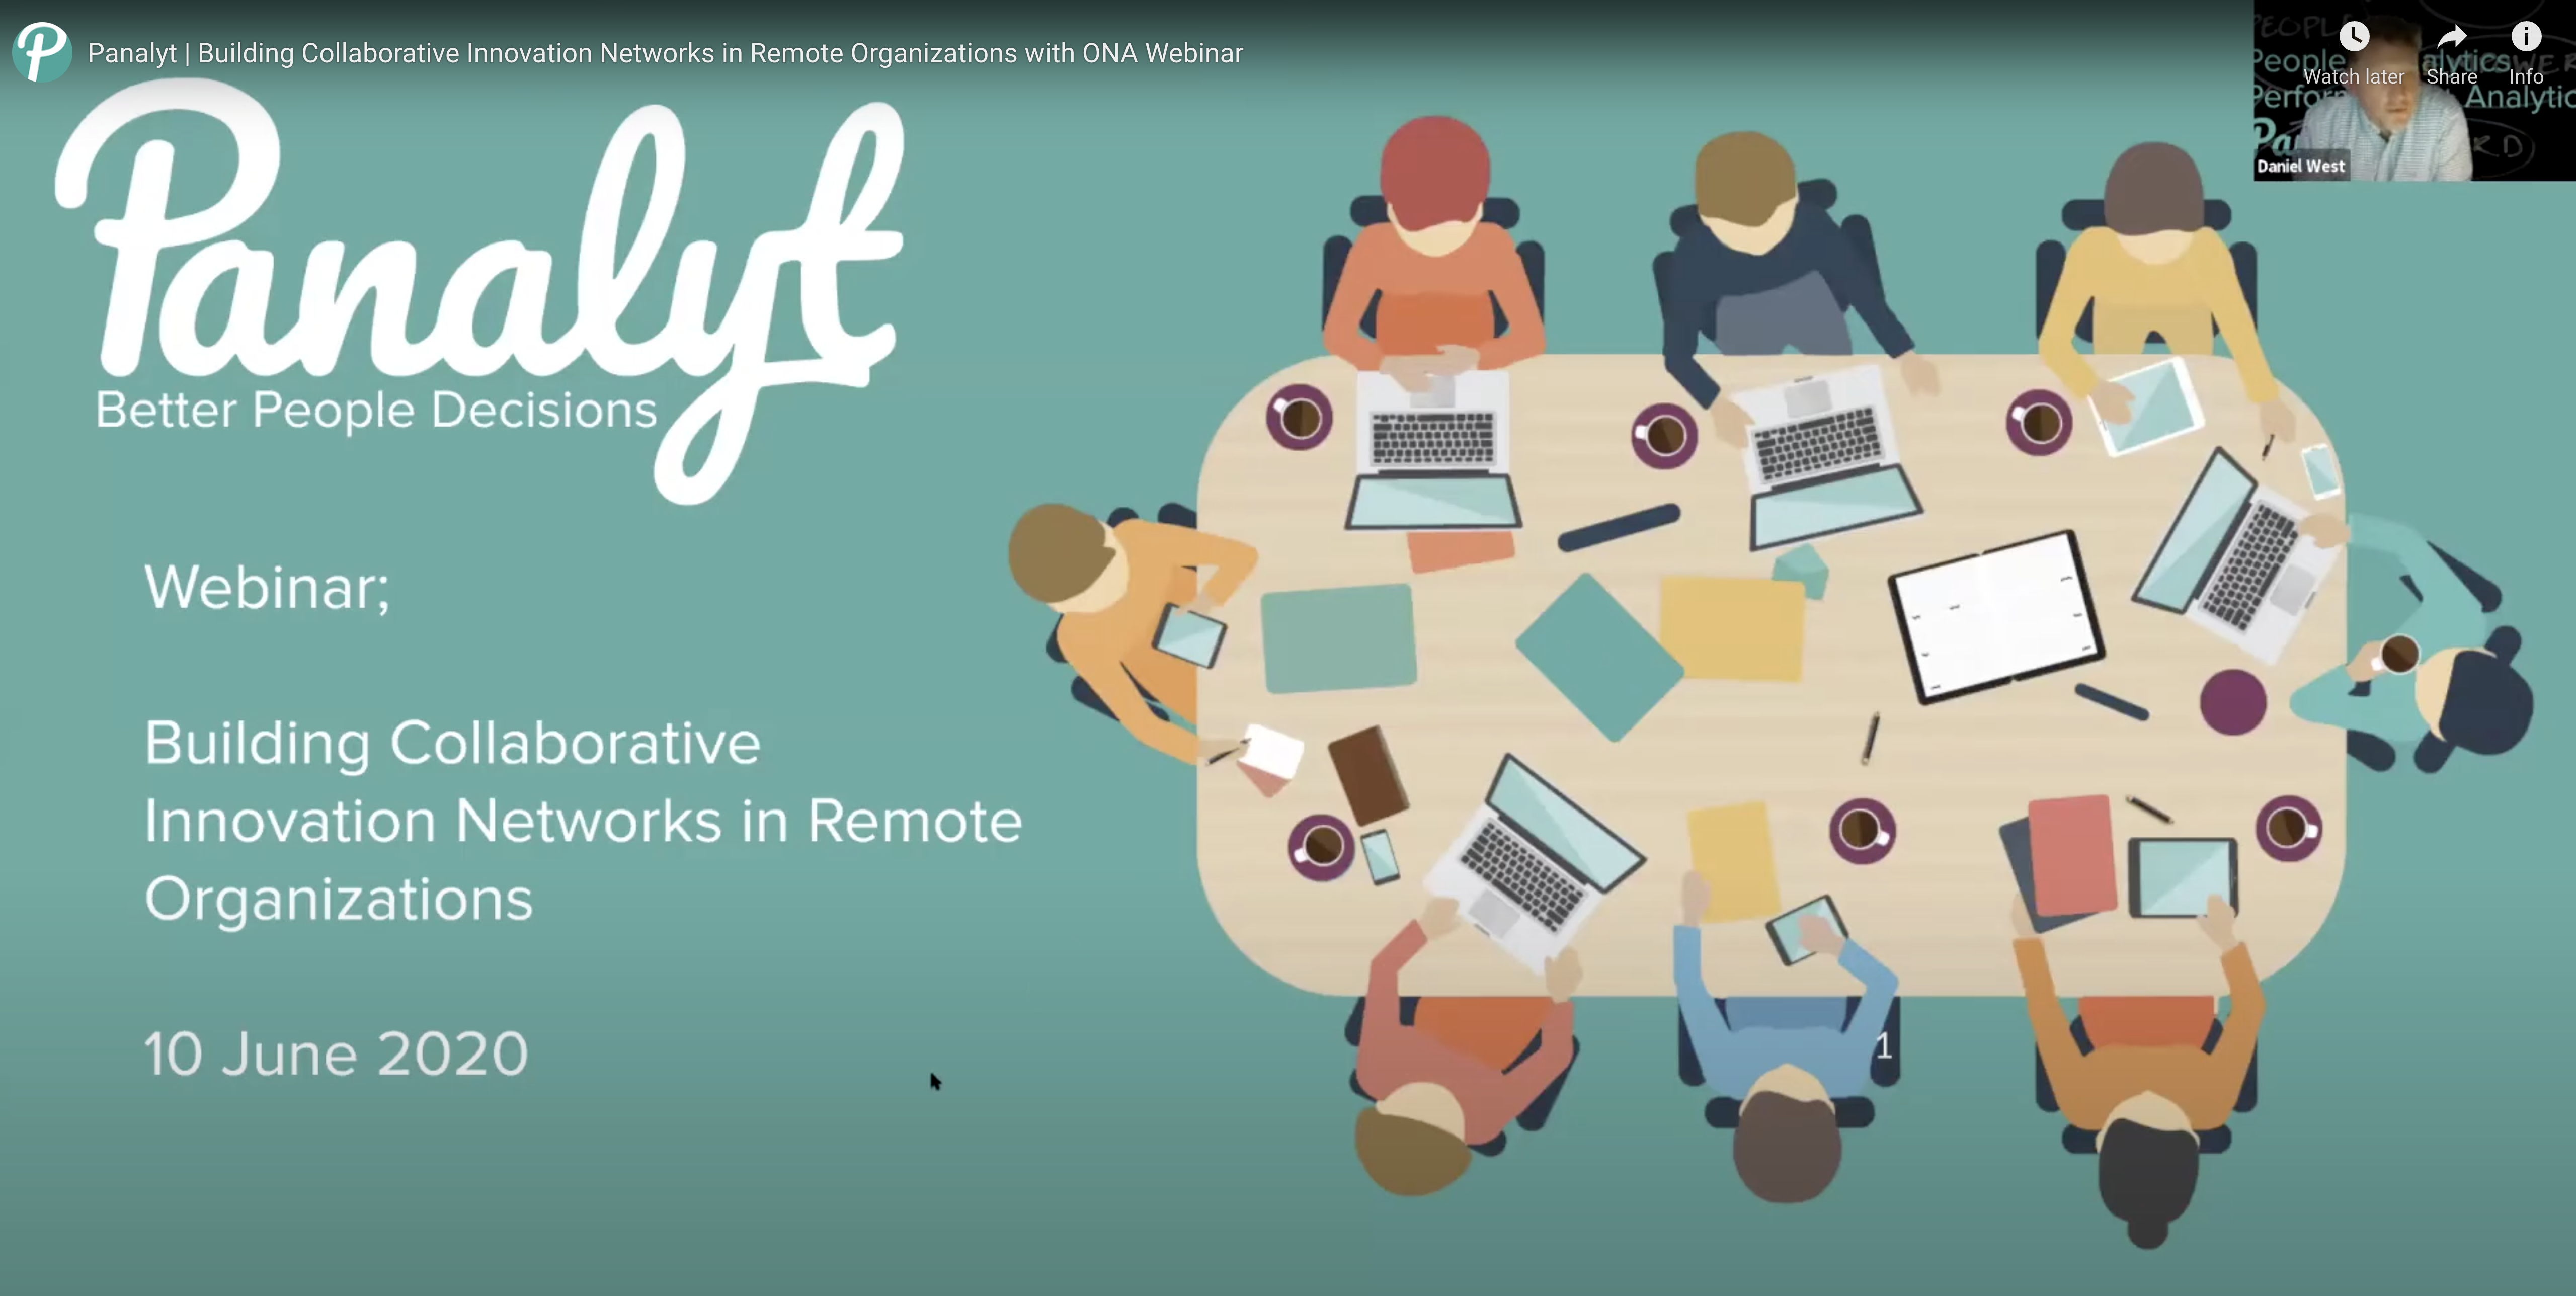 Relational Analytics: Building Collaborative Innovation Networks in Remote Organizations